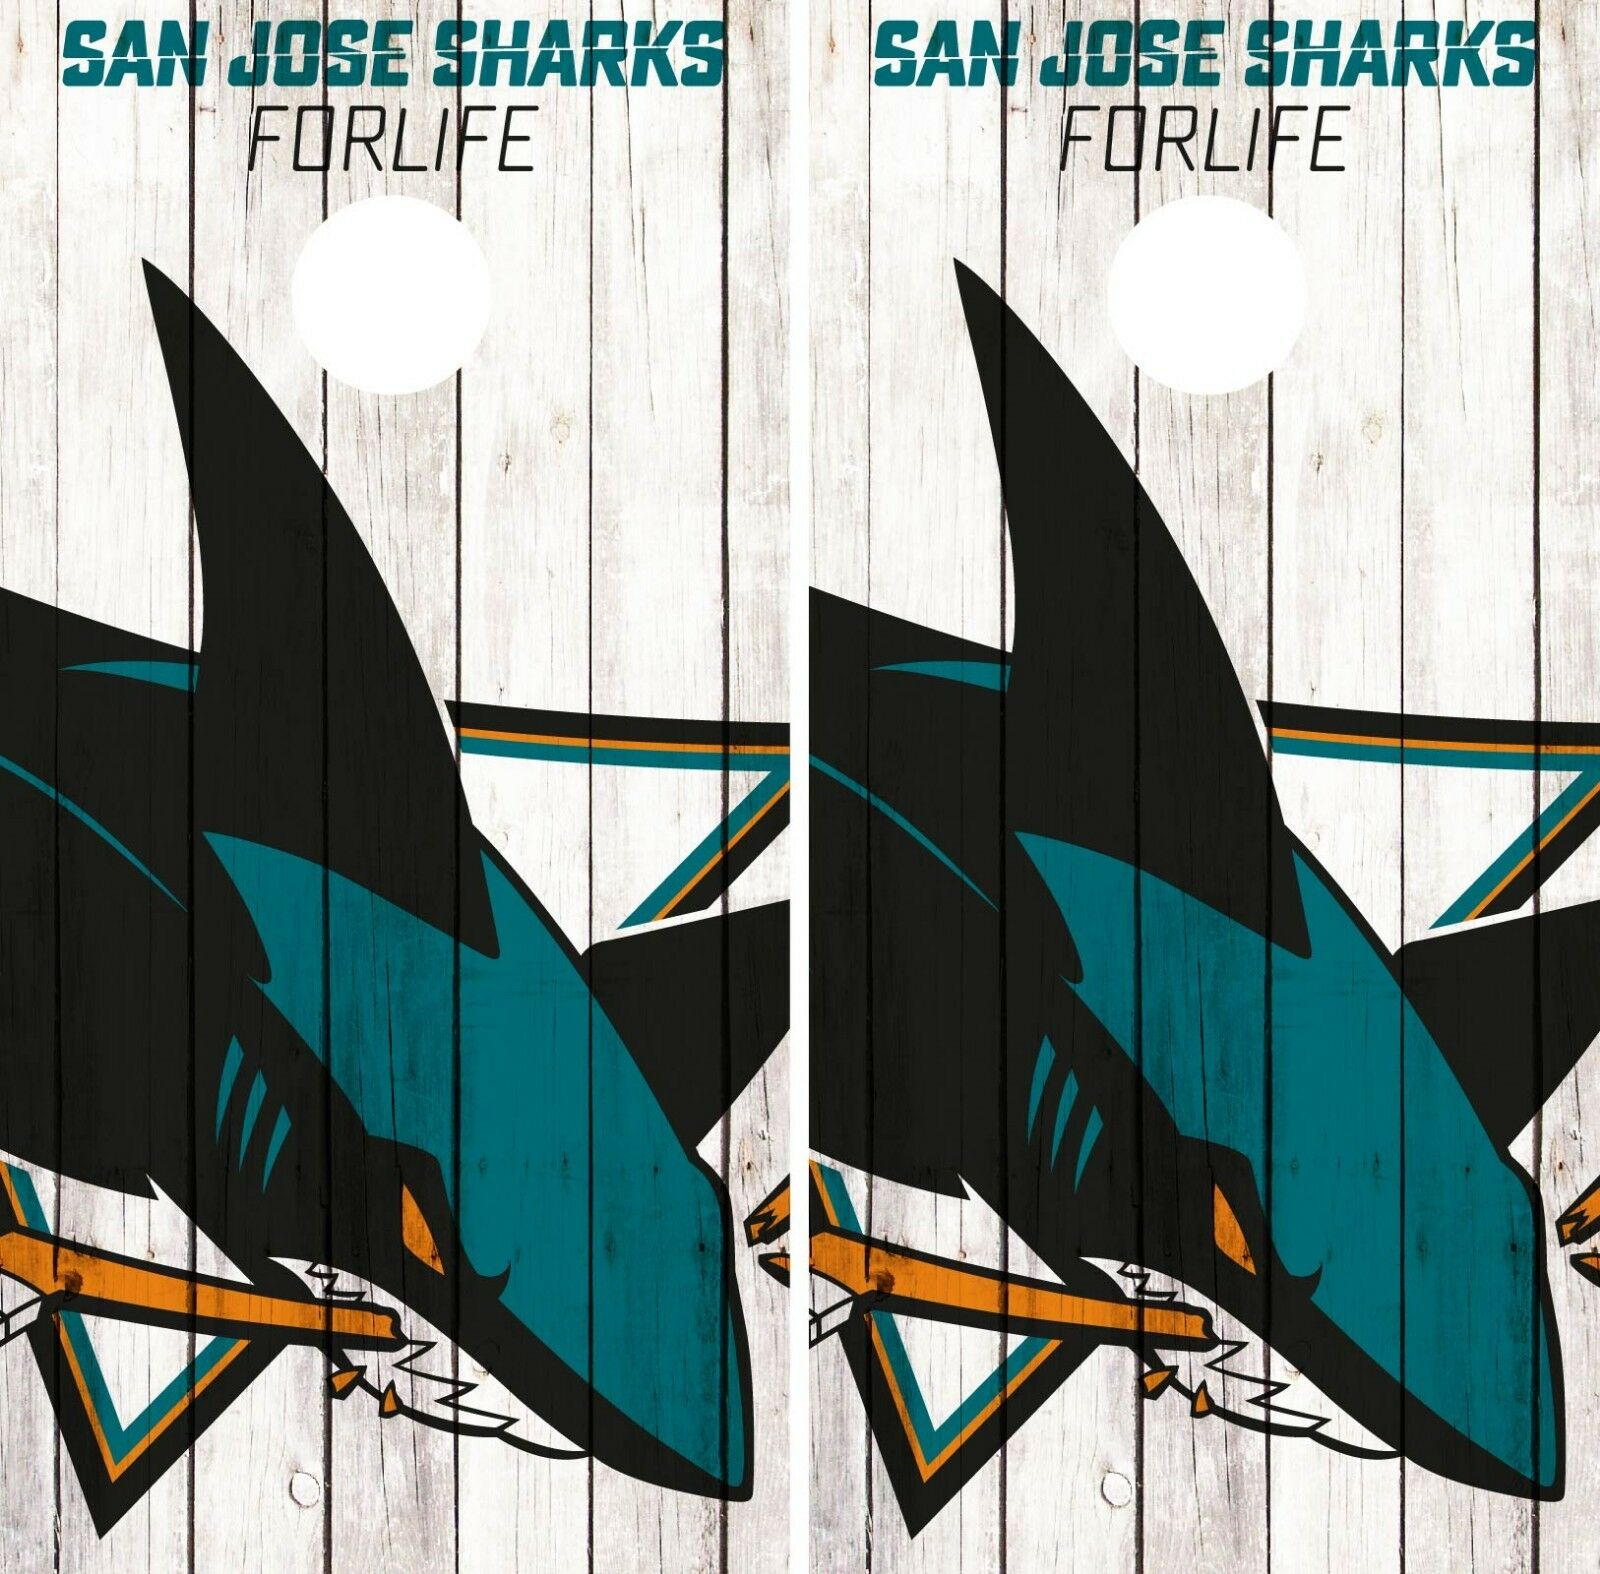 San Jose Sharks Cornhole  Wrap NHL Logo Game Board Skin Set Vinyl Decal Art CO210  select from the newest brands like